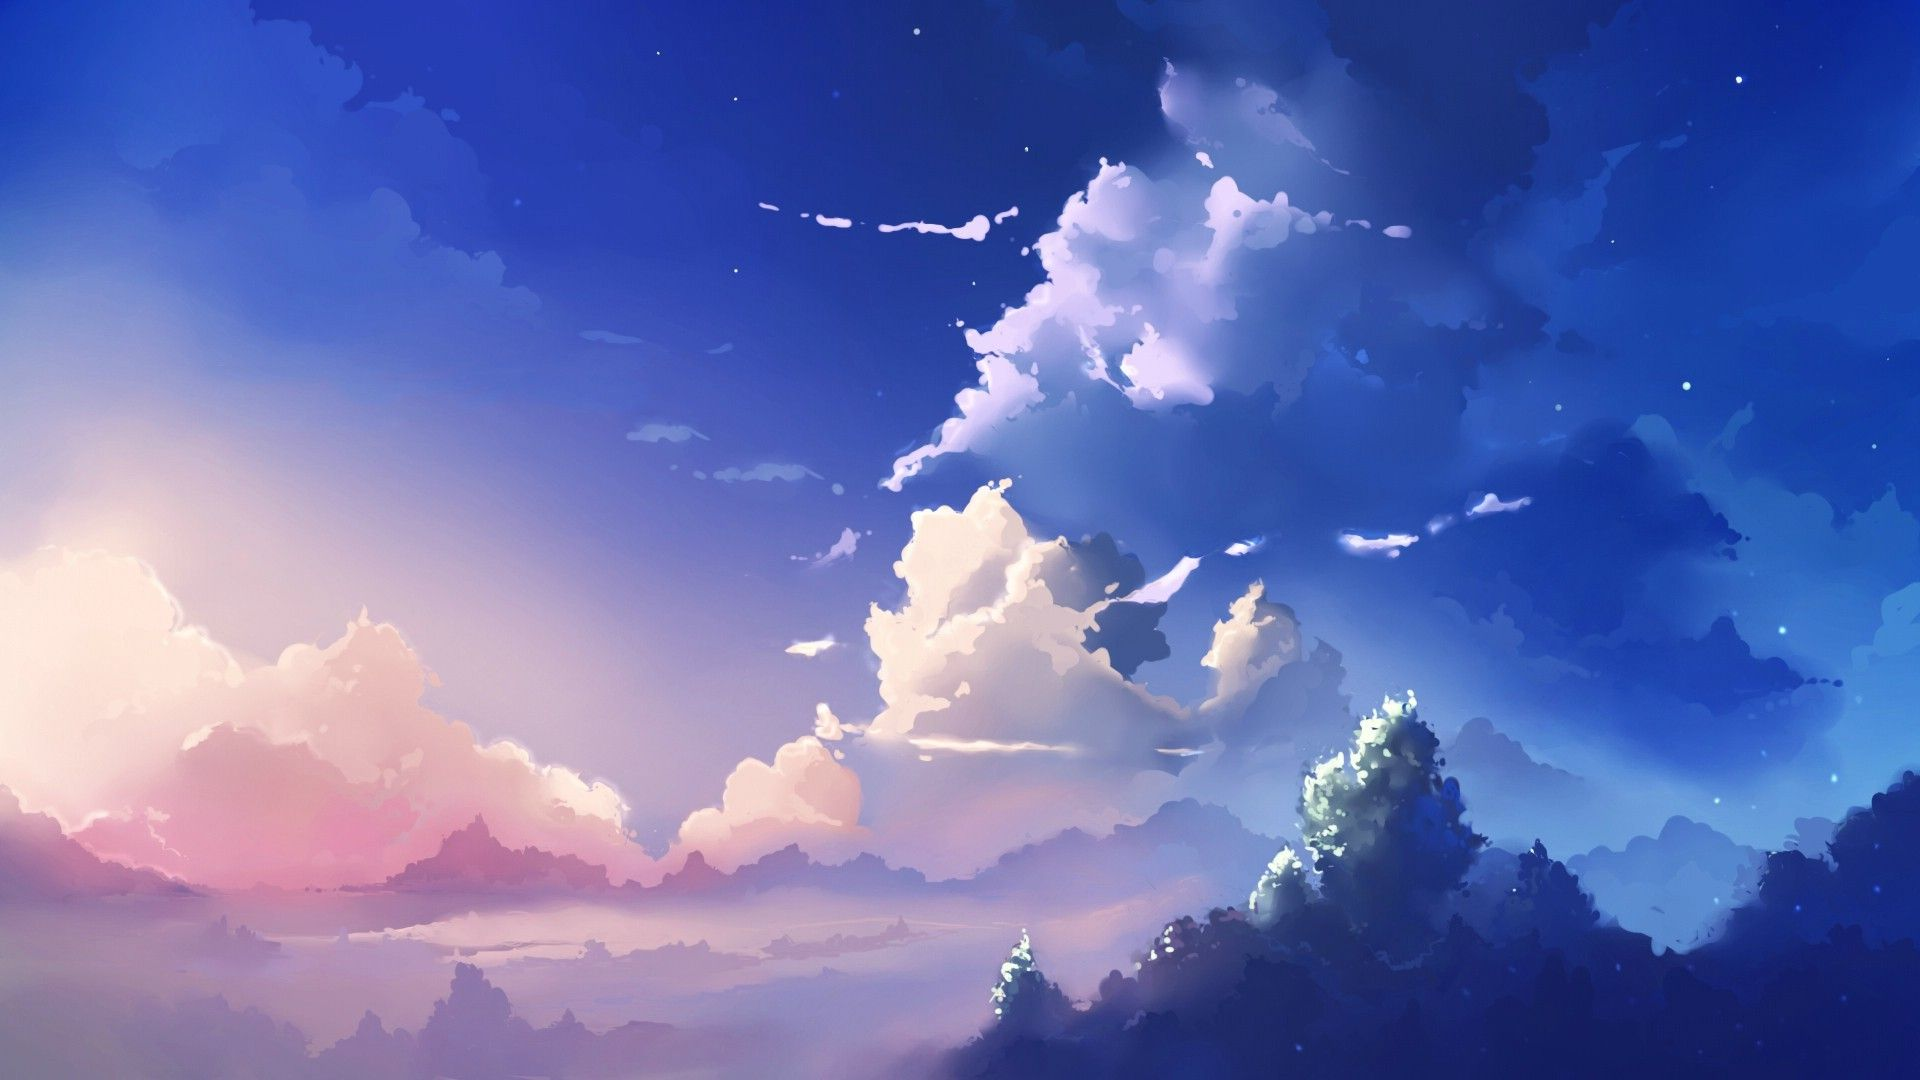 Sun setting over a mountain landscape, blue aesthetic background,. Animezero - Watch Anime Episodes Online For Free | Online ...